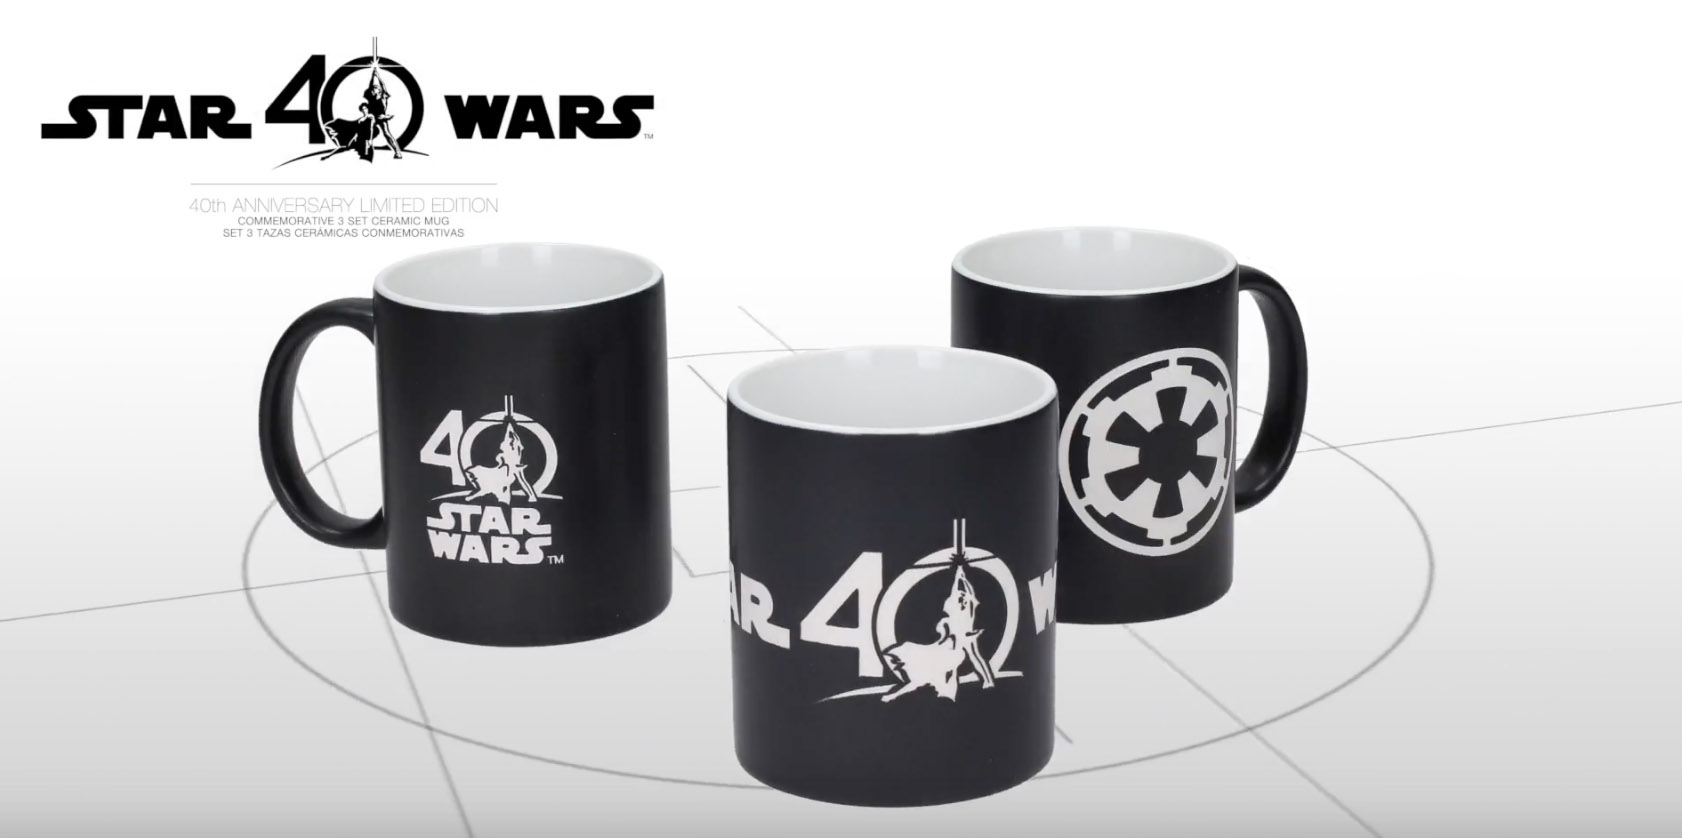 40th Anniversary Mugs From SD Toys